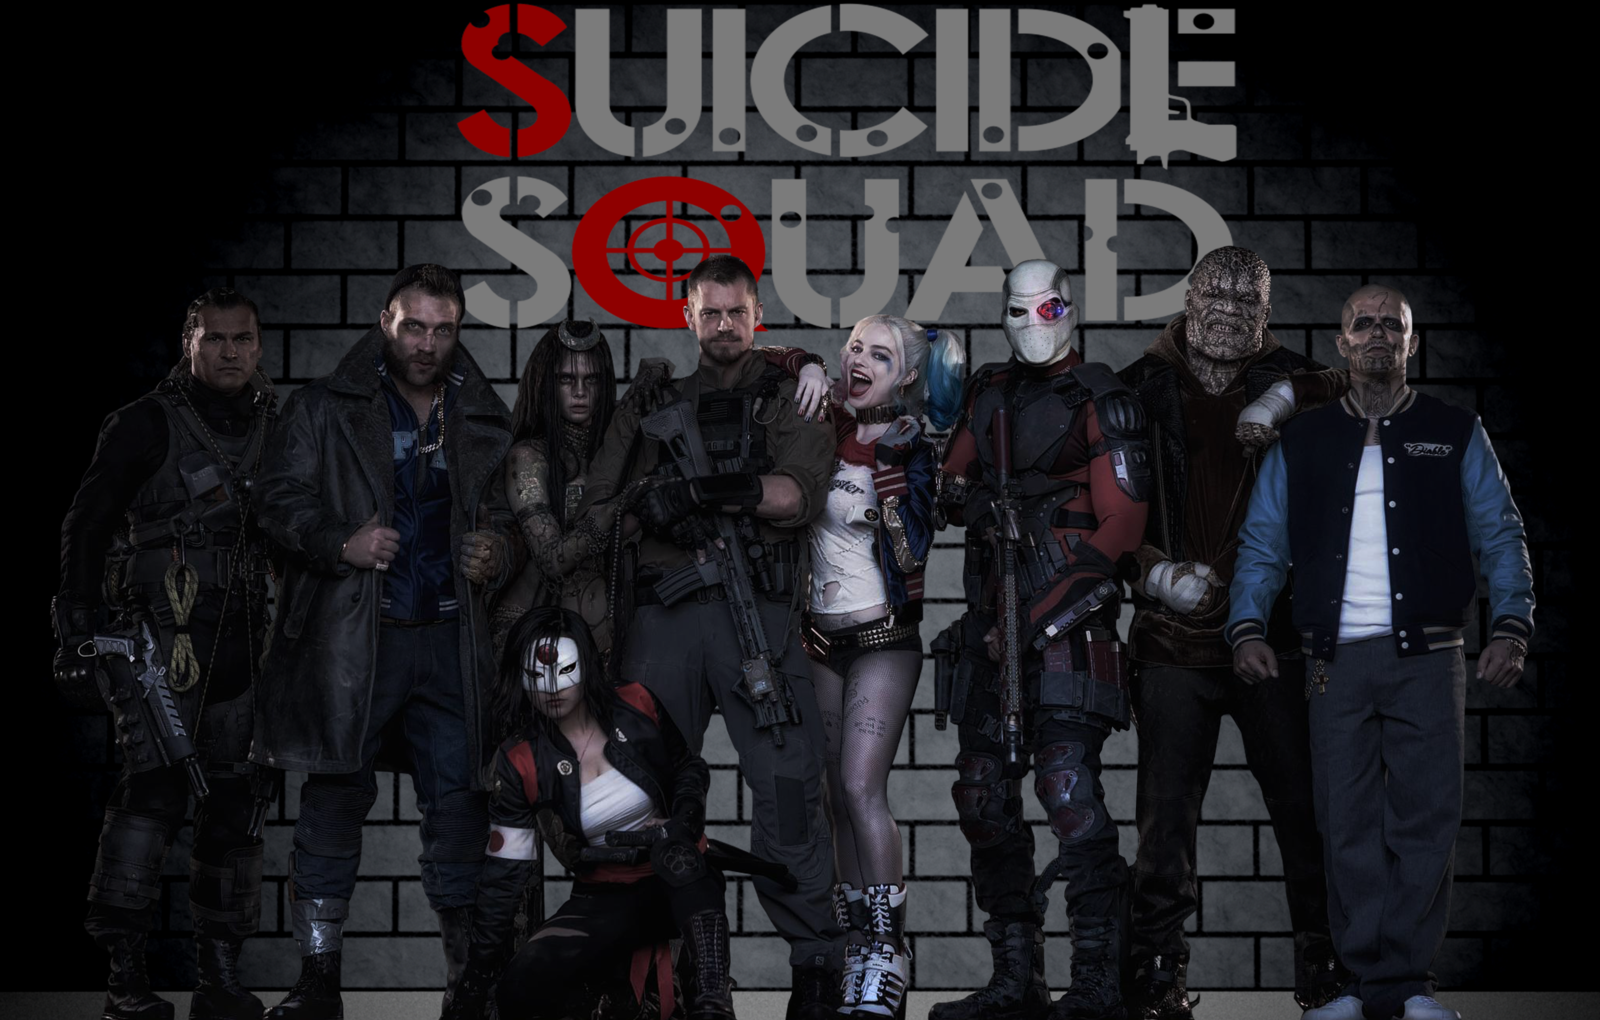 suicide squad wallpaper by arkhamnatic watch customization wallpaper 1600x1020